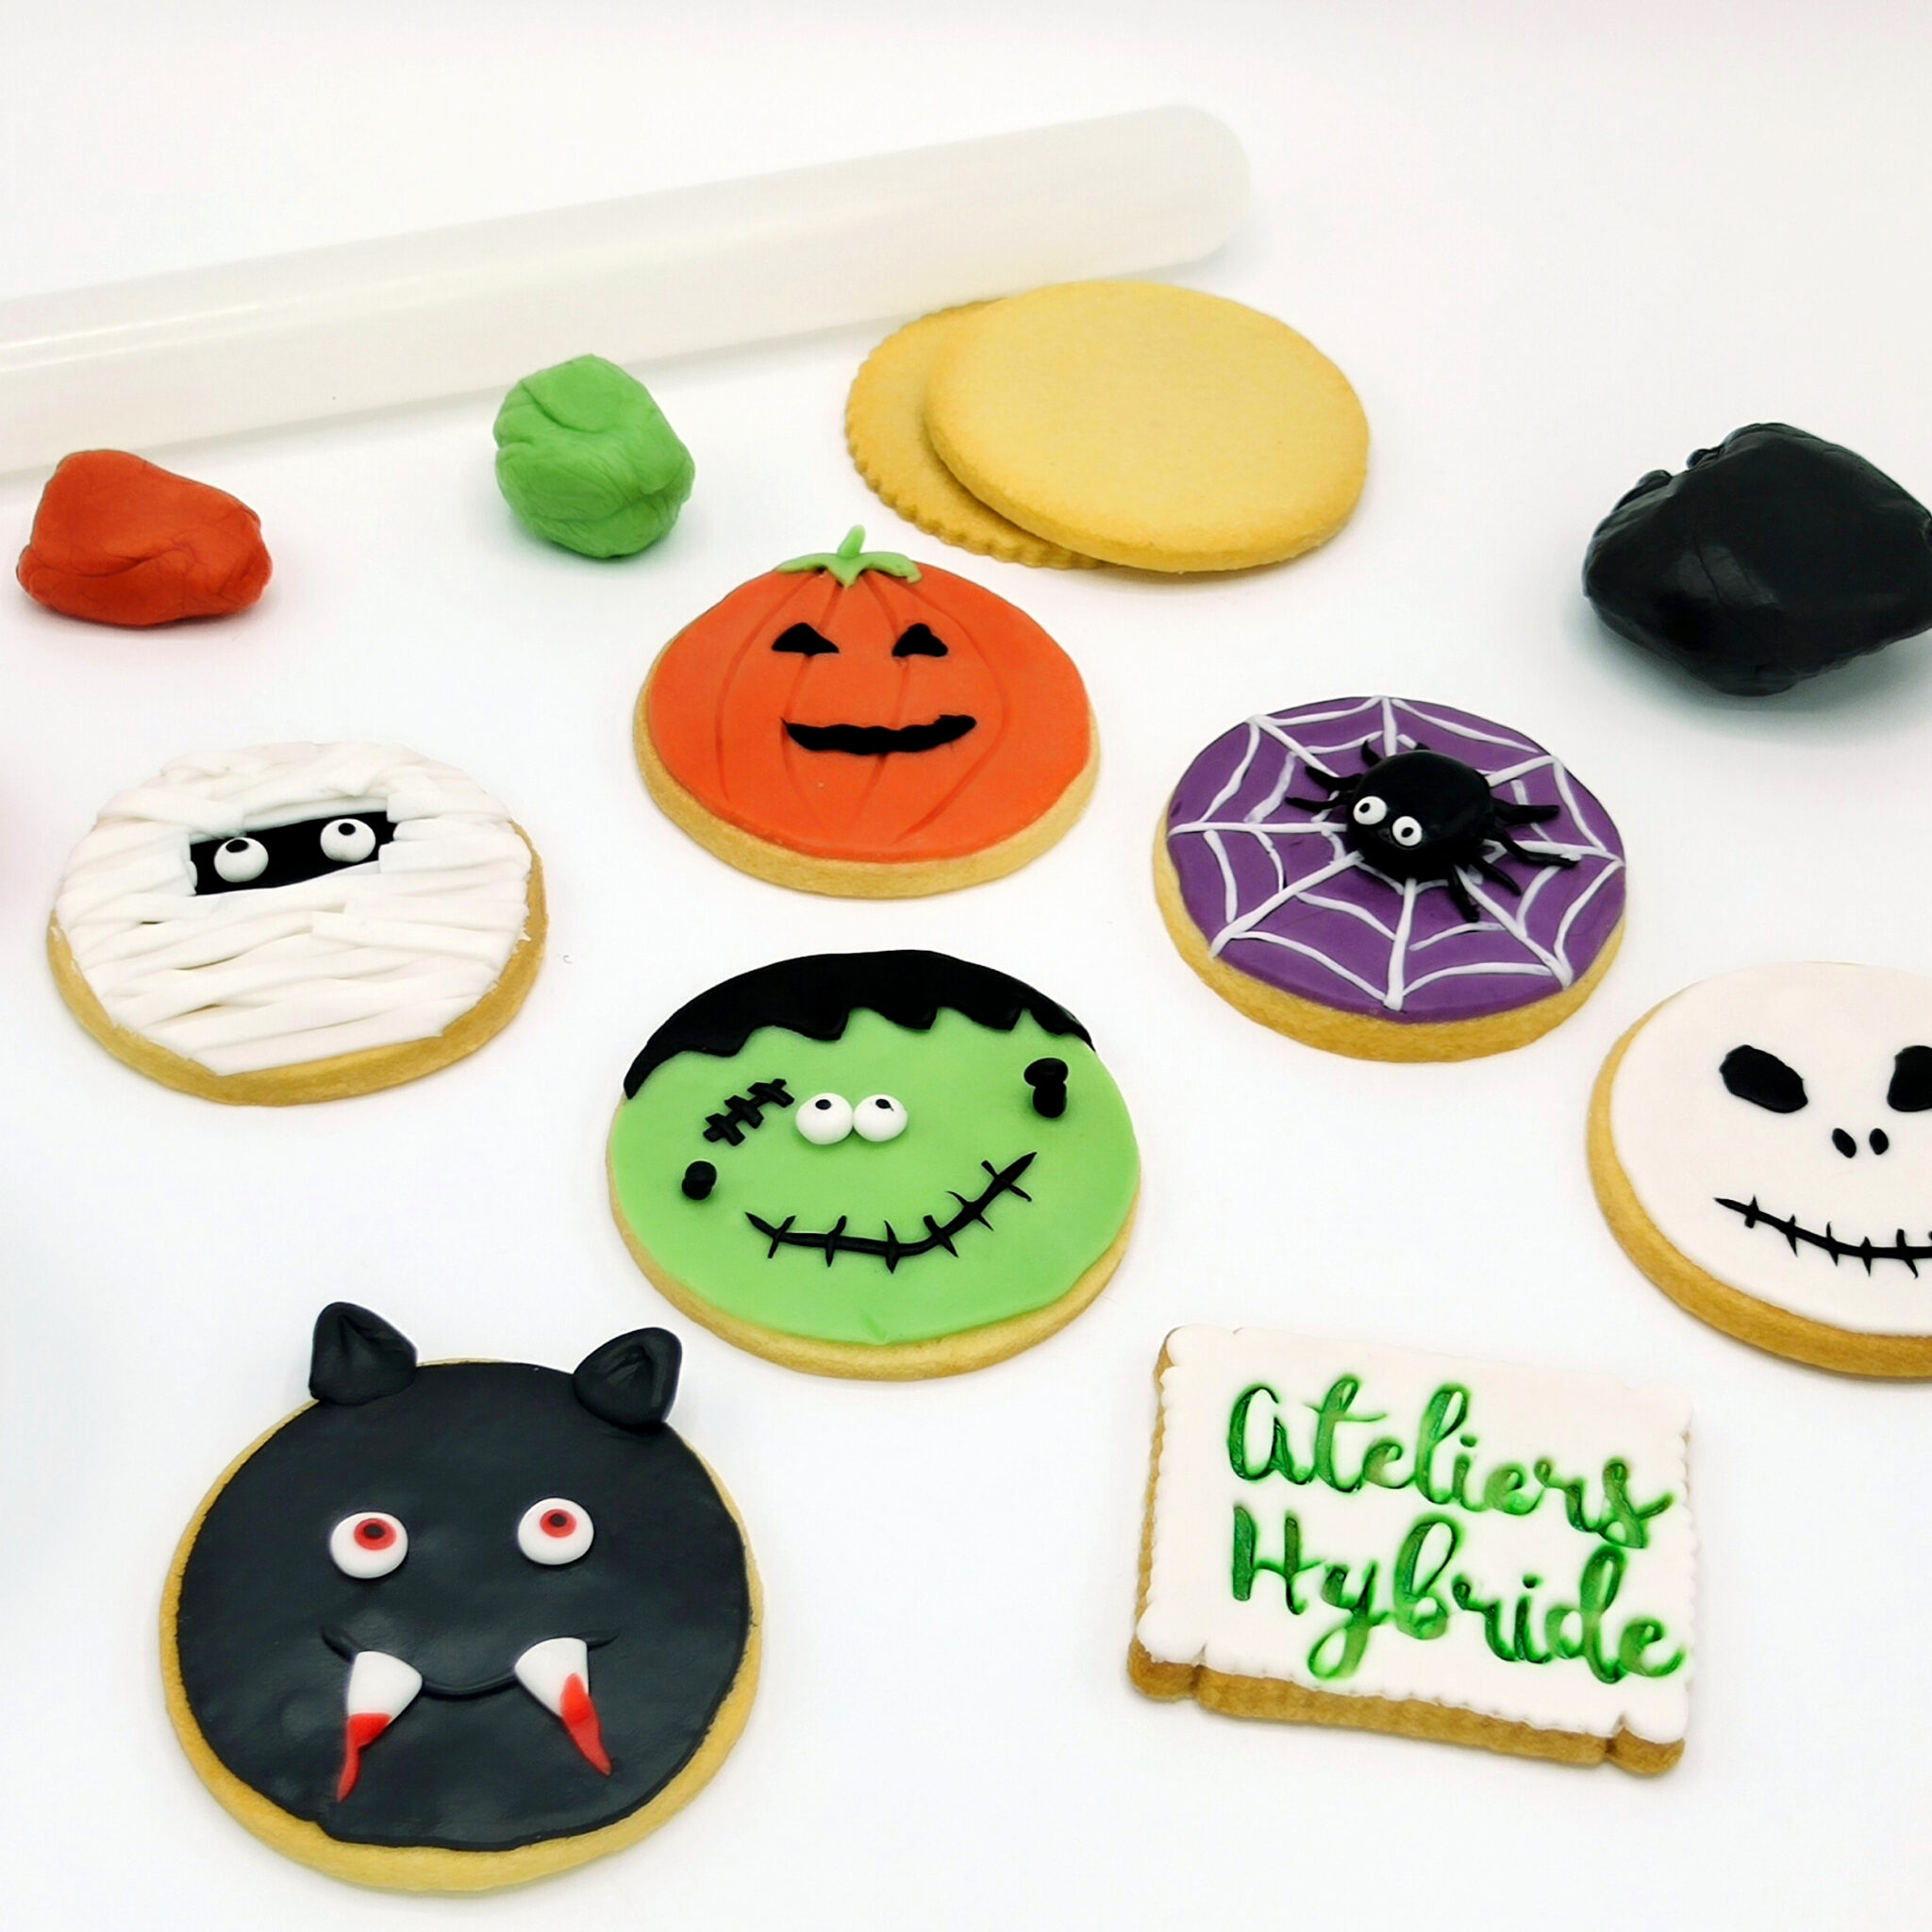 Pate a sucre Halloween